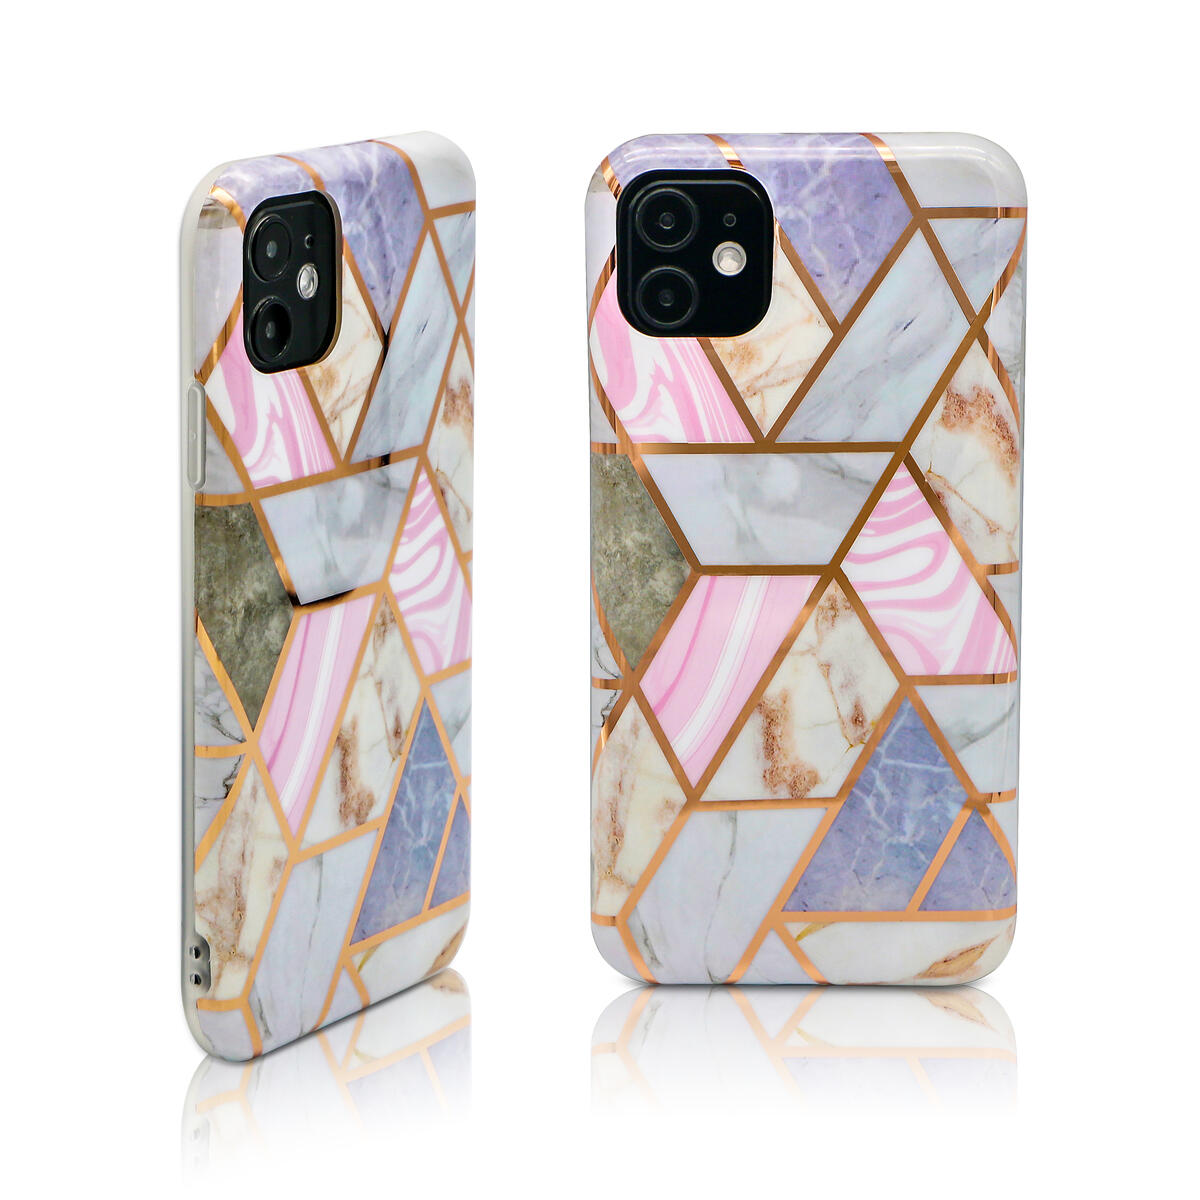 Laudtec Designer Phone Case and Stand Compatible with iPhone 11 Pro Max Flexible TPU Glossy Anti-Scratch Case (Pink)